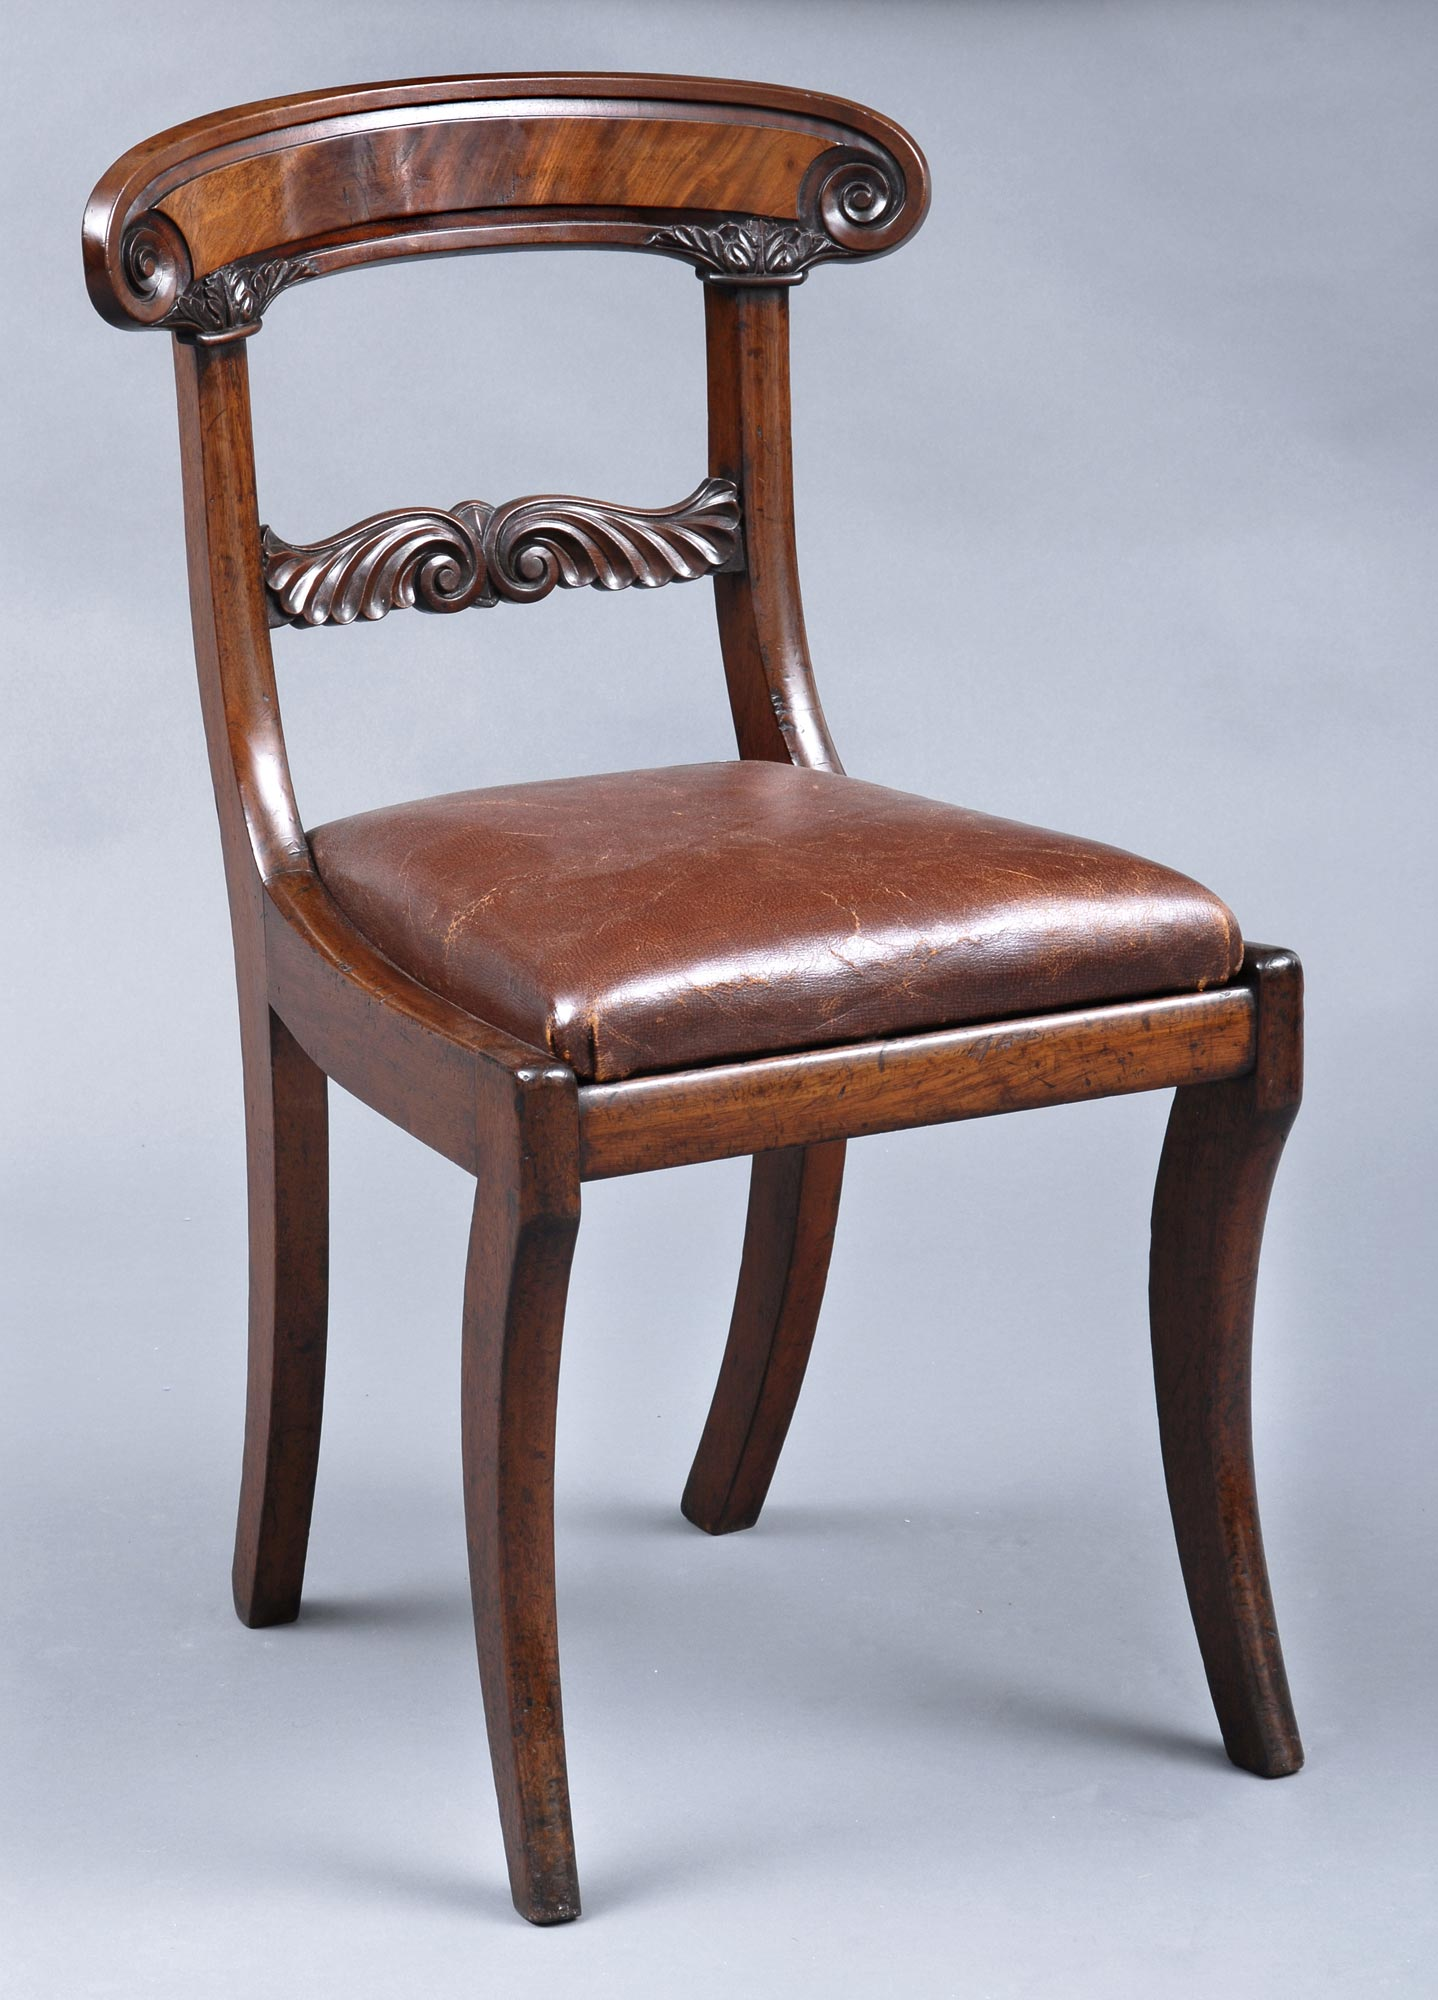 William IV English Antique Side Chair · William IV English Antique Side  Chair ... - William IV English Antique Mahogany Side Chair Antique Chairs